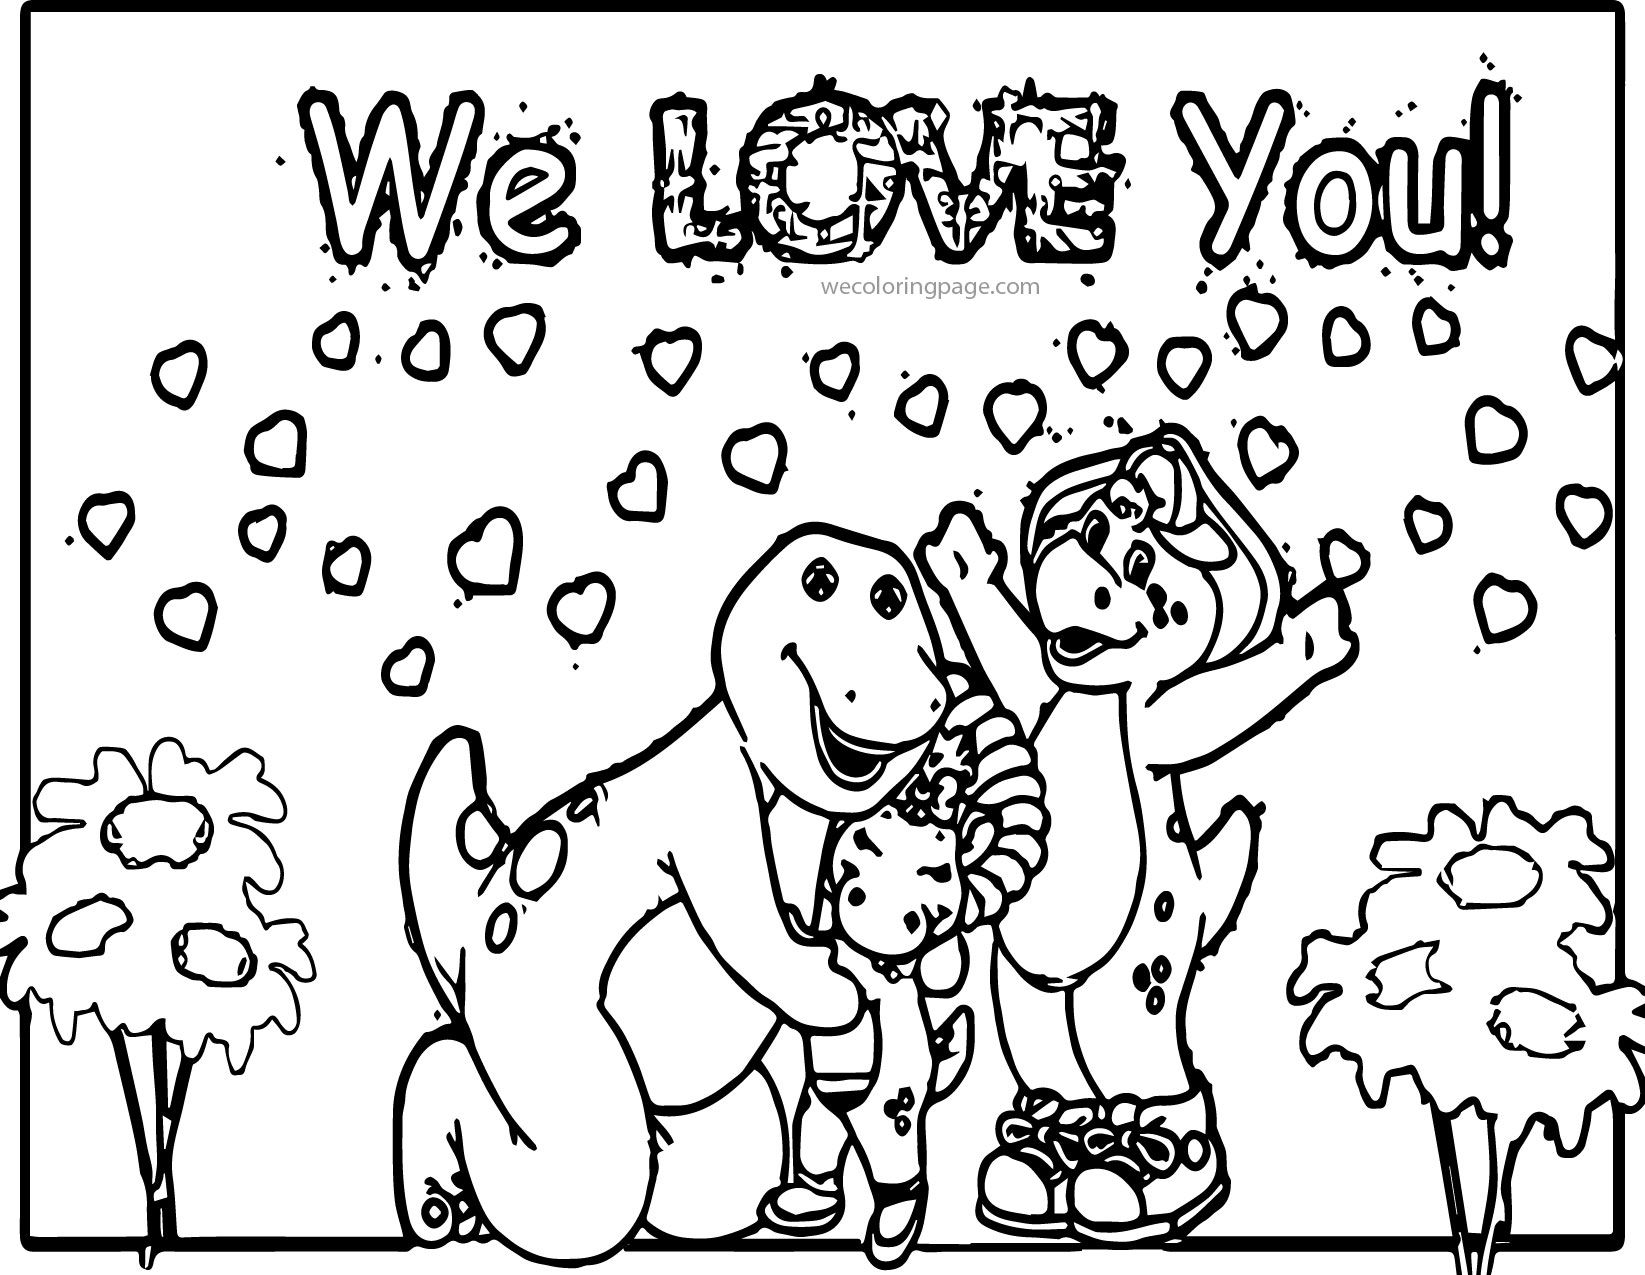 Barney Friends Coloring Pages Coloring Pages Dinosaur Coloring Pages Printable Coloring